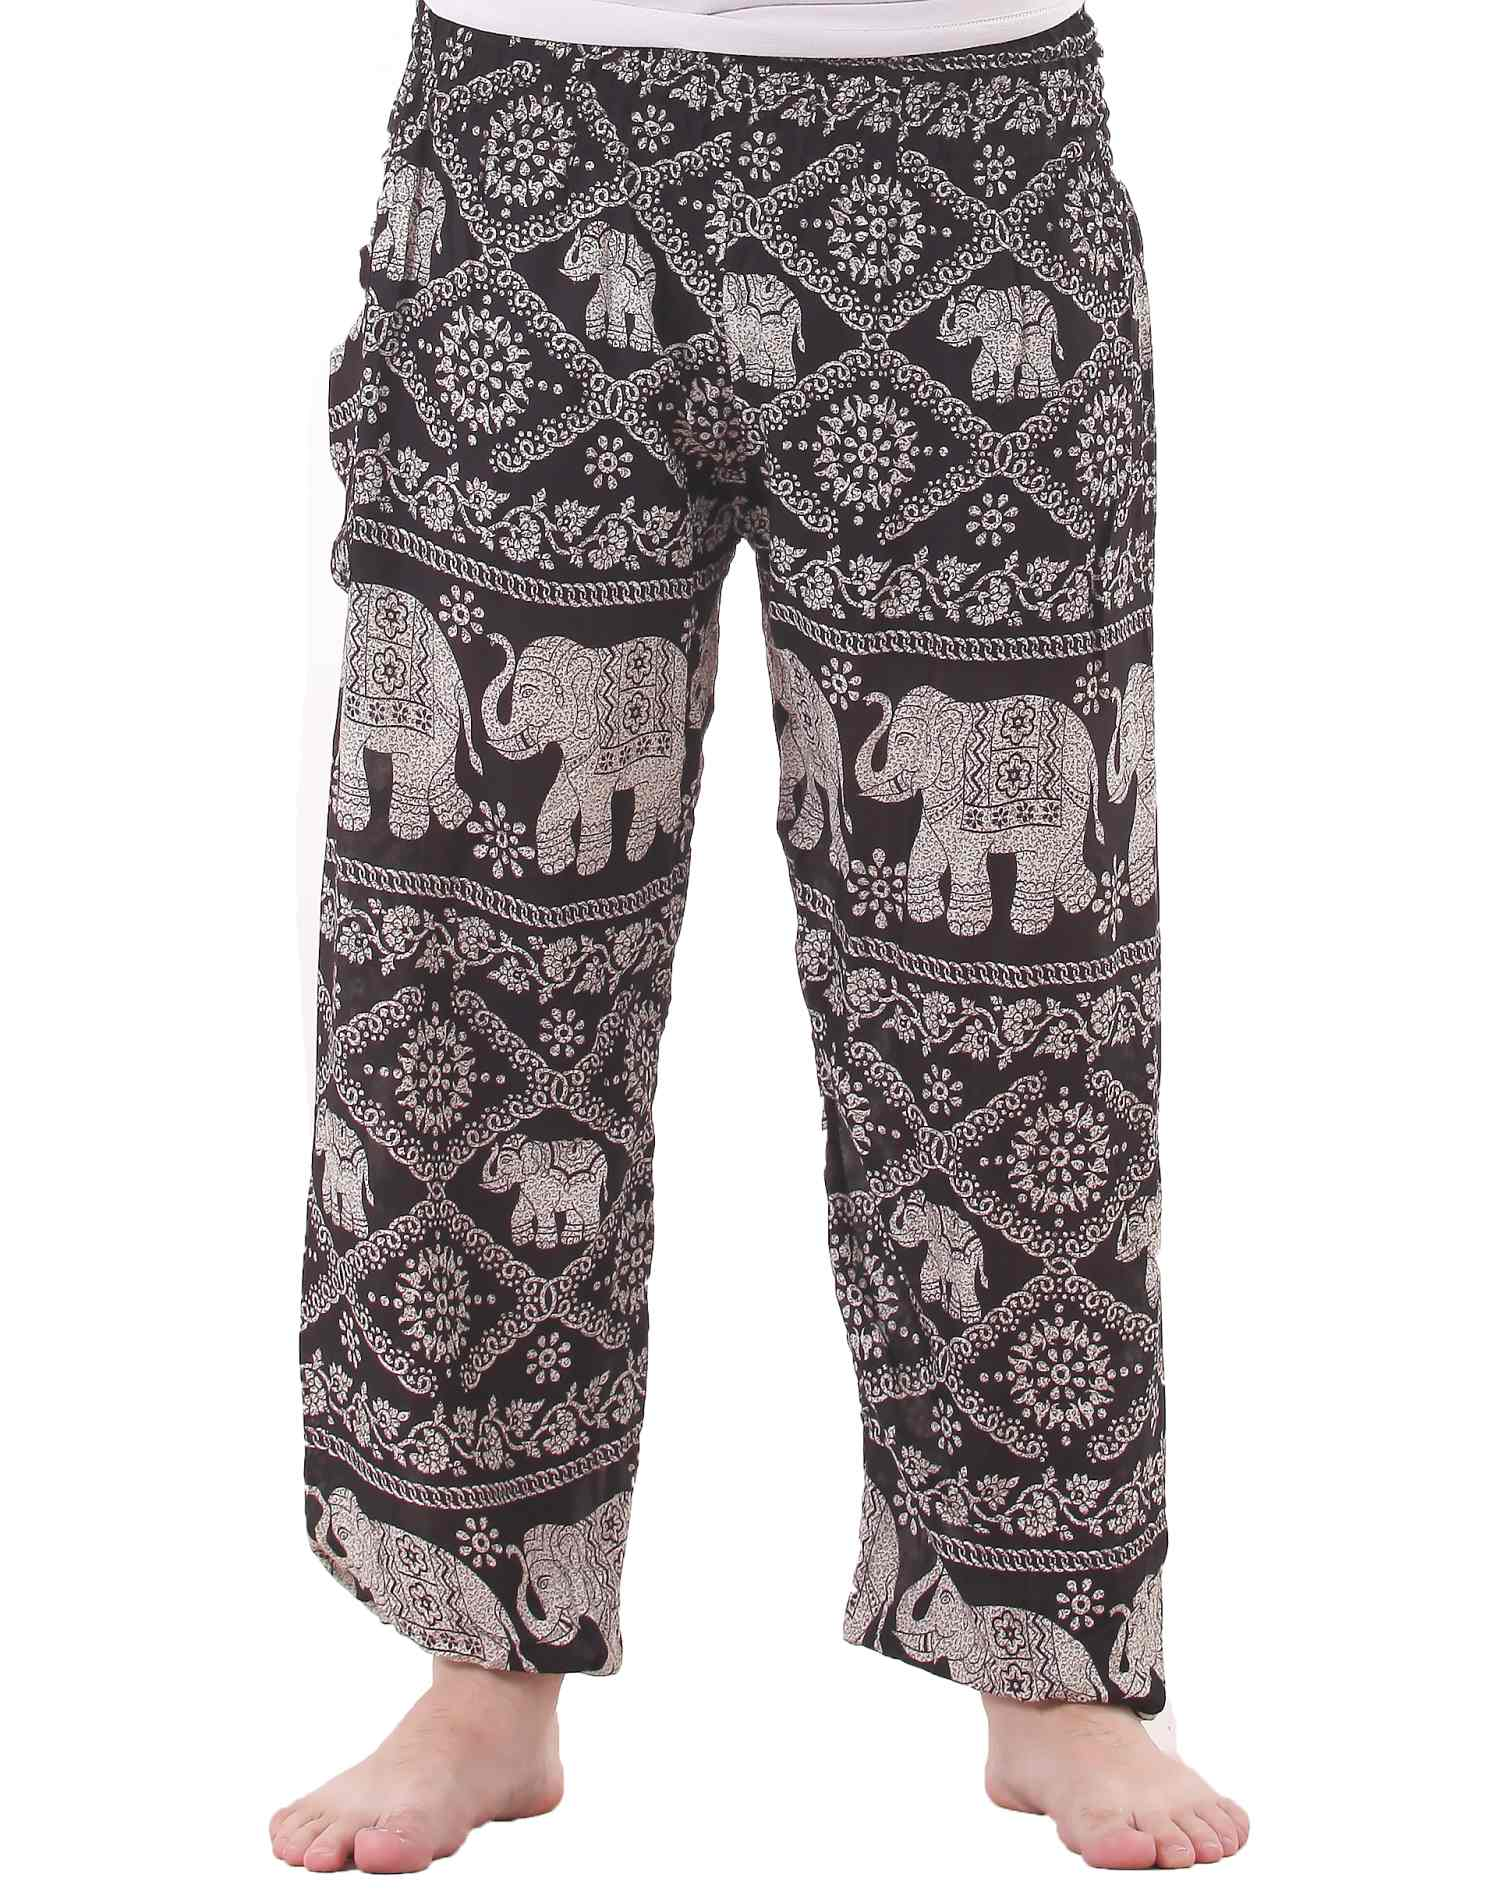 Innovative Rag Amp Bone Elephant Bell Pants W Tags  Pants  WRAGB38284  The